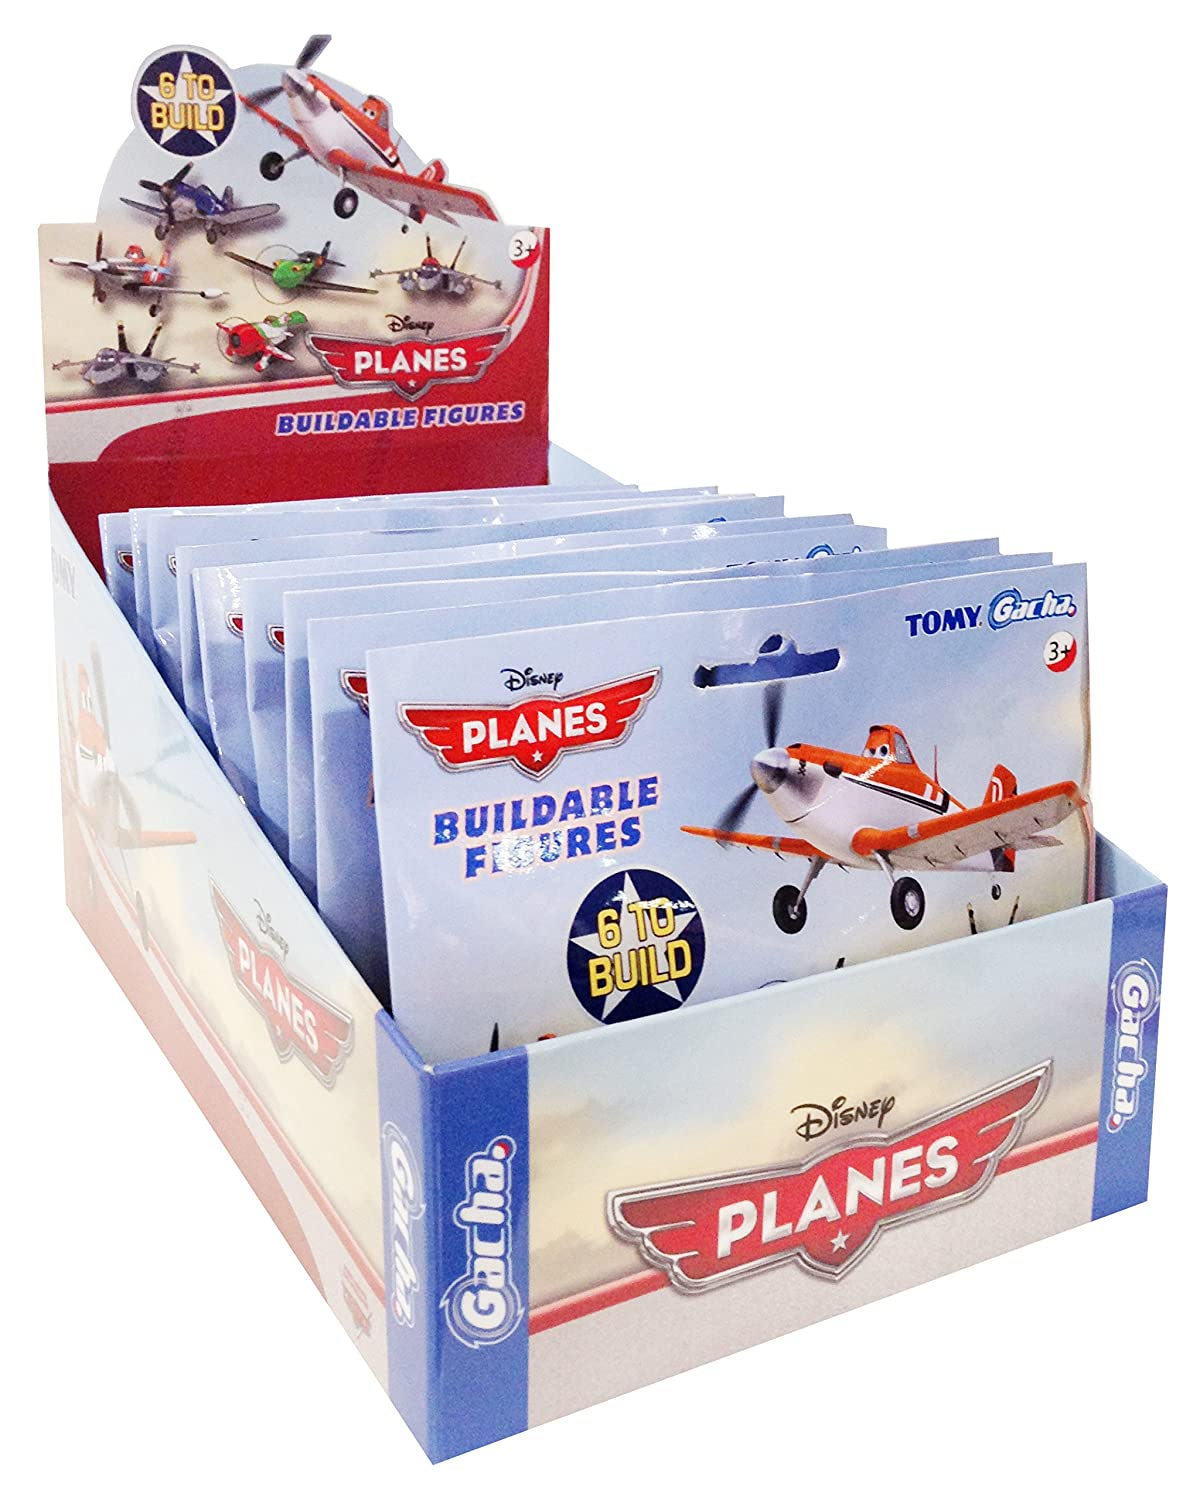 Disney Planes Large Collectable Buildable Figures TOMY T8820EU